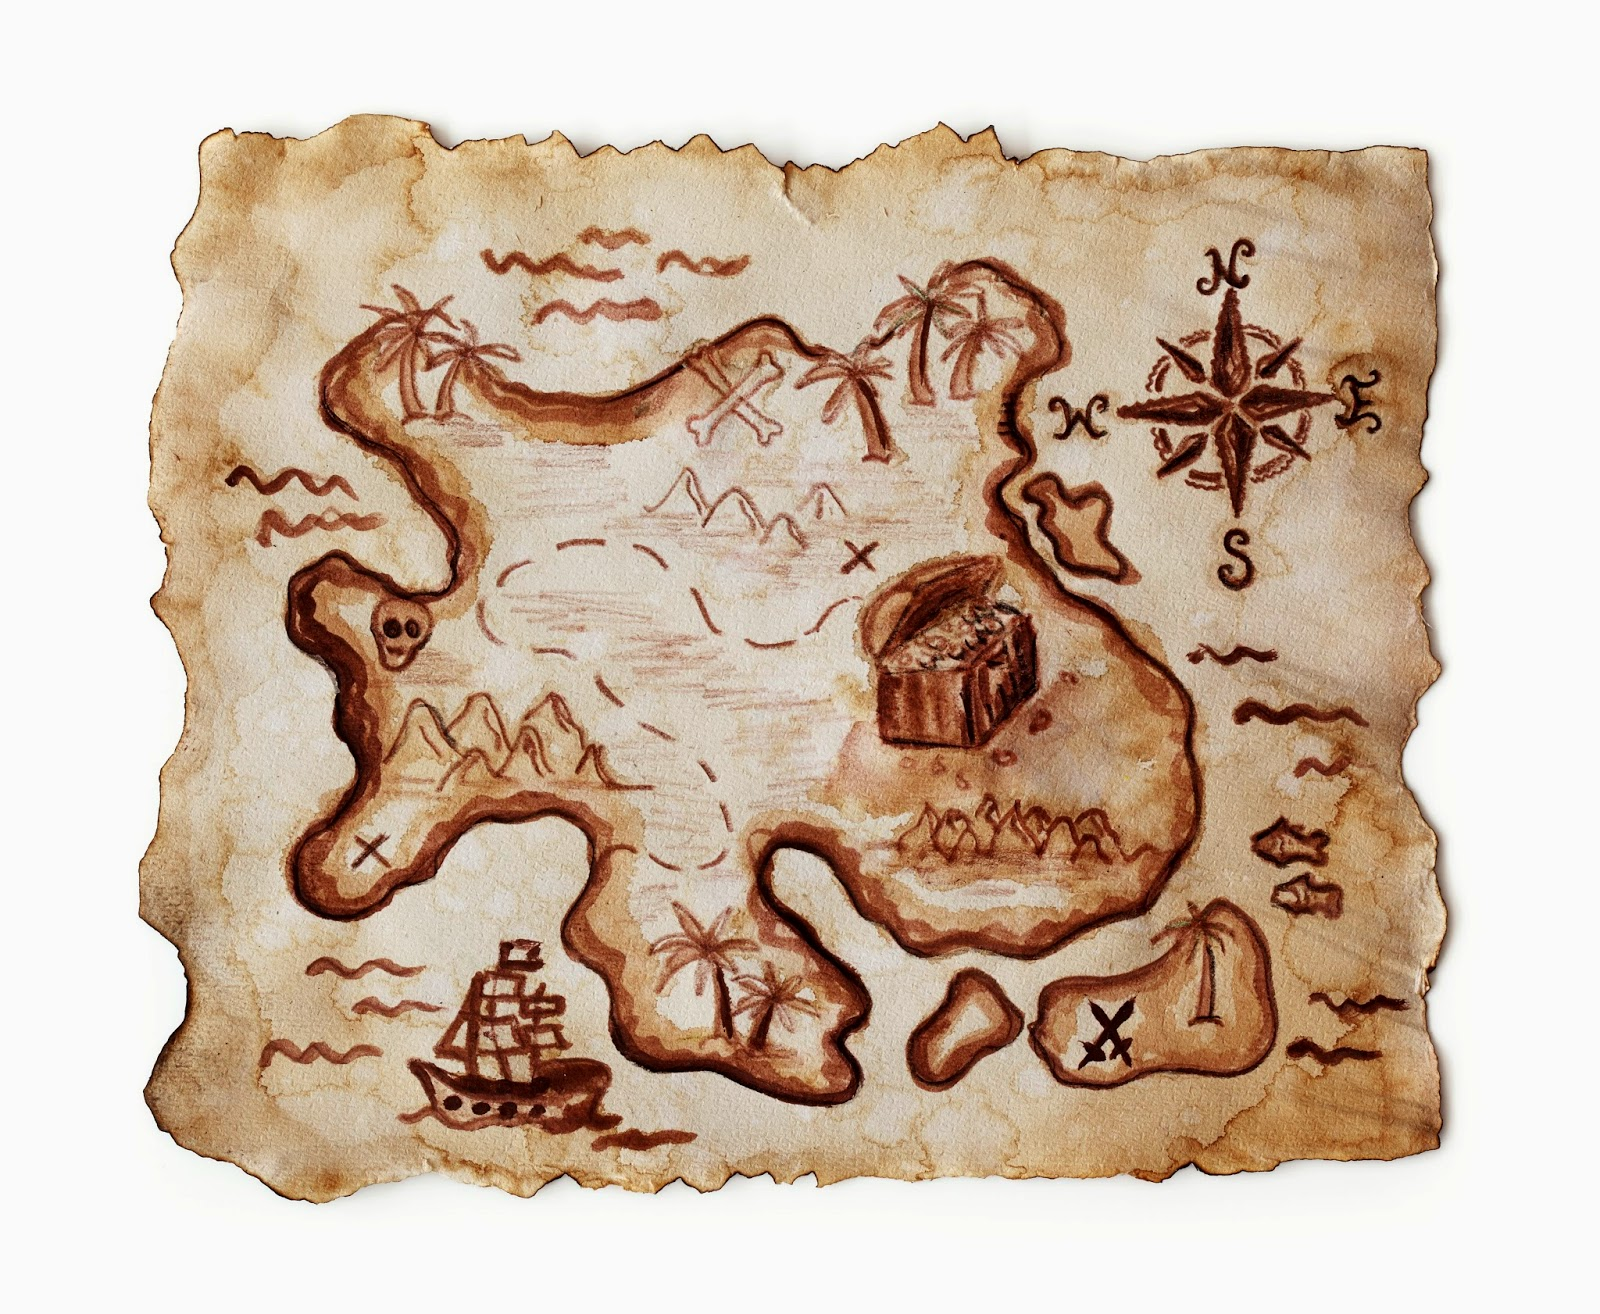 A map marks the way to buried treasure.